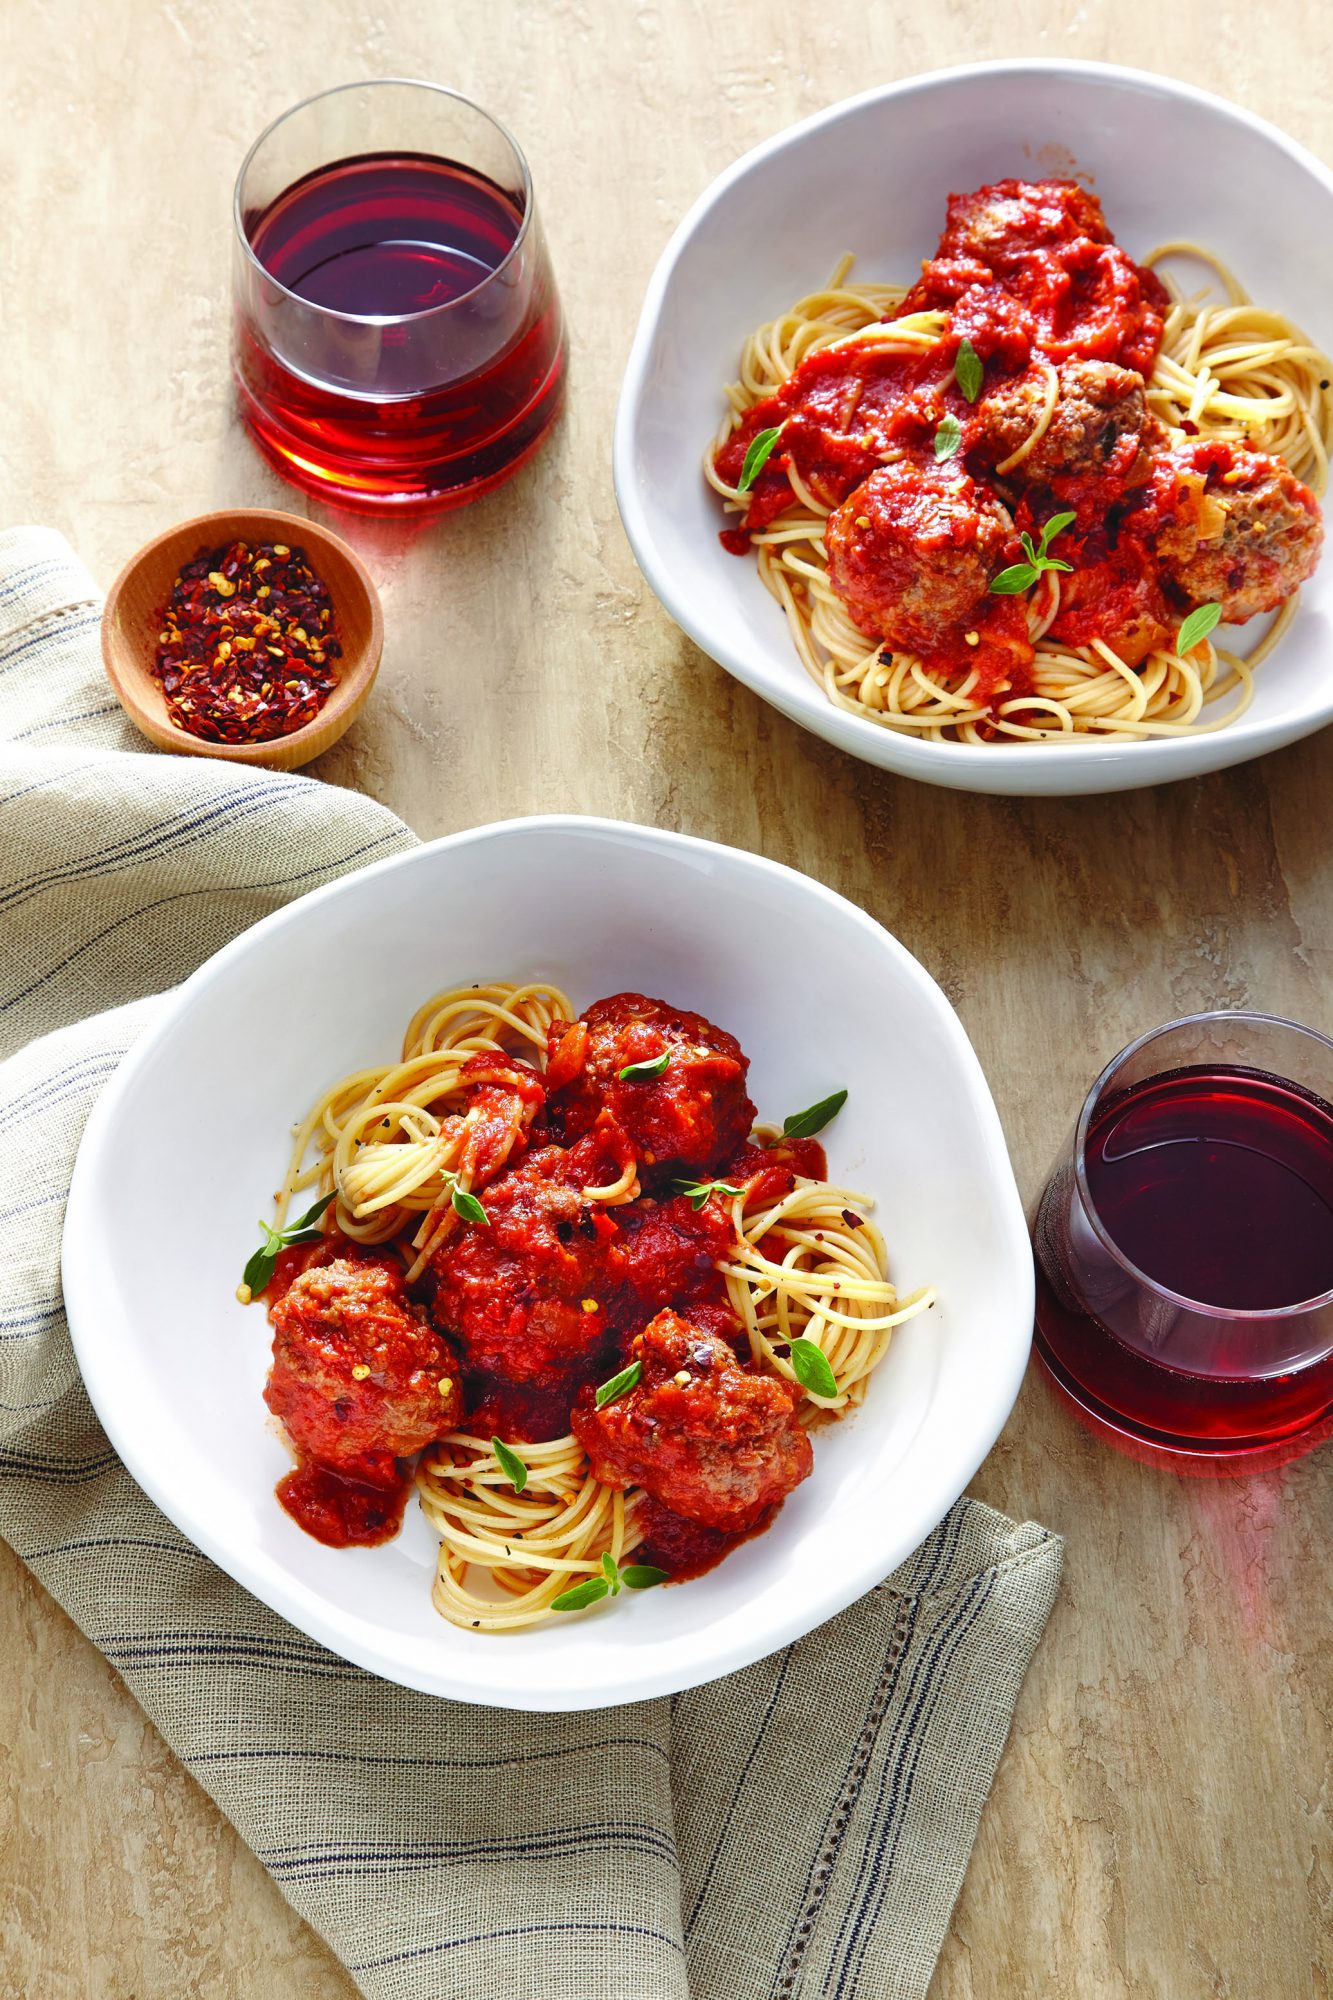 Spaghetti and Meatballs with Red Wine